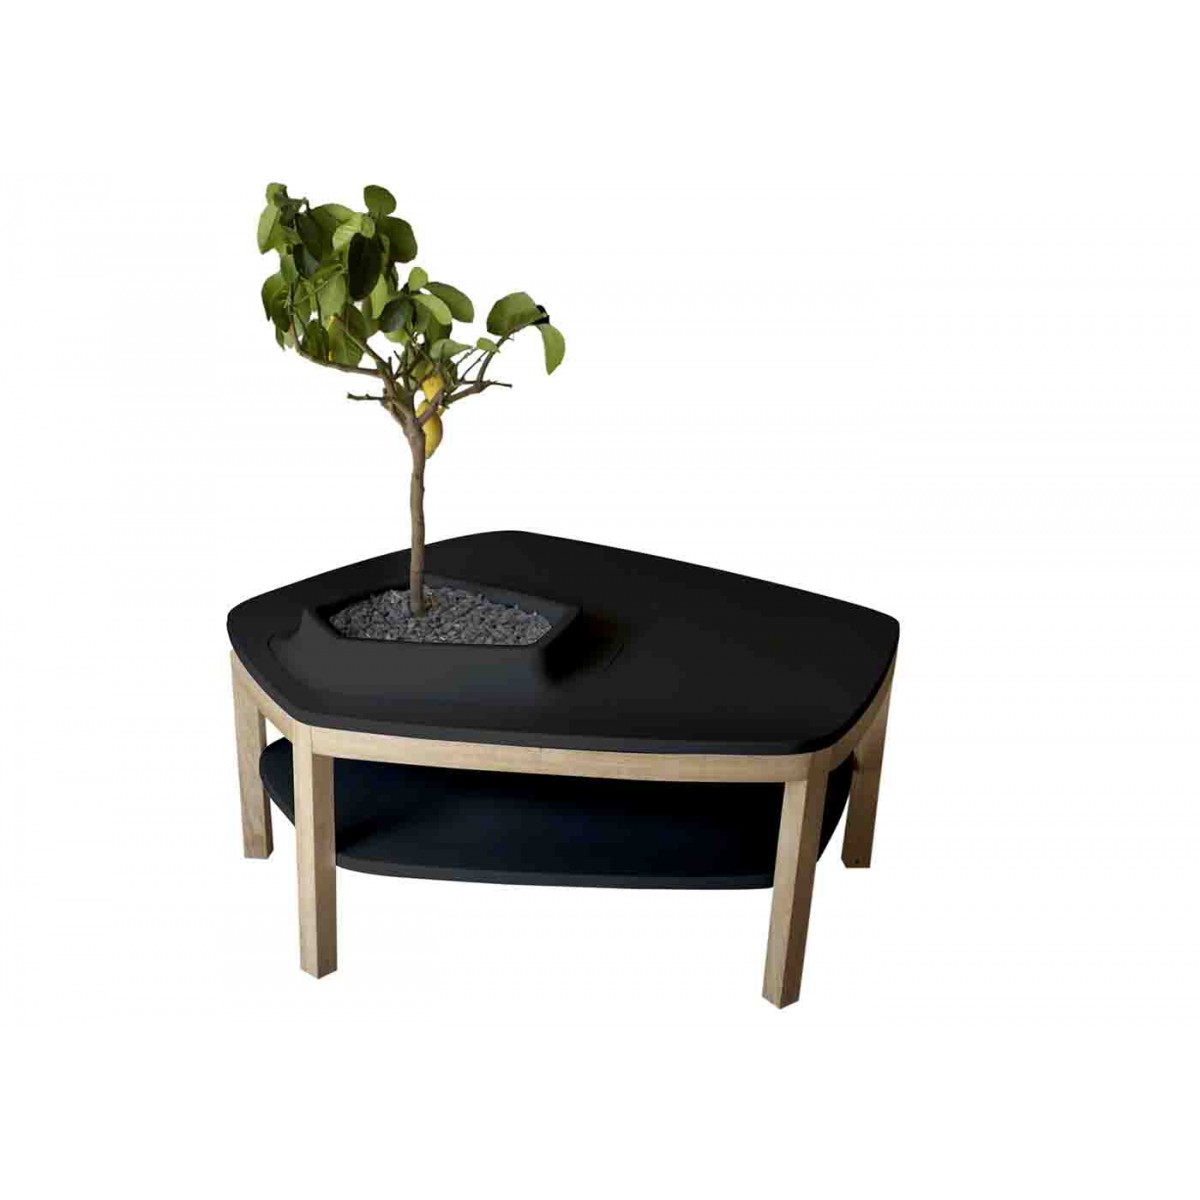 Table Basse Volcane Pied Original Design Avec Vasque